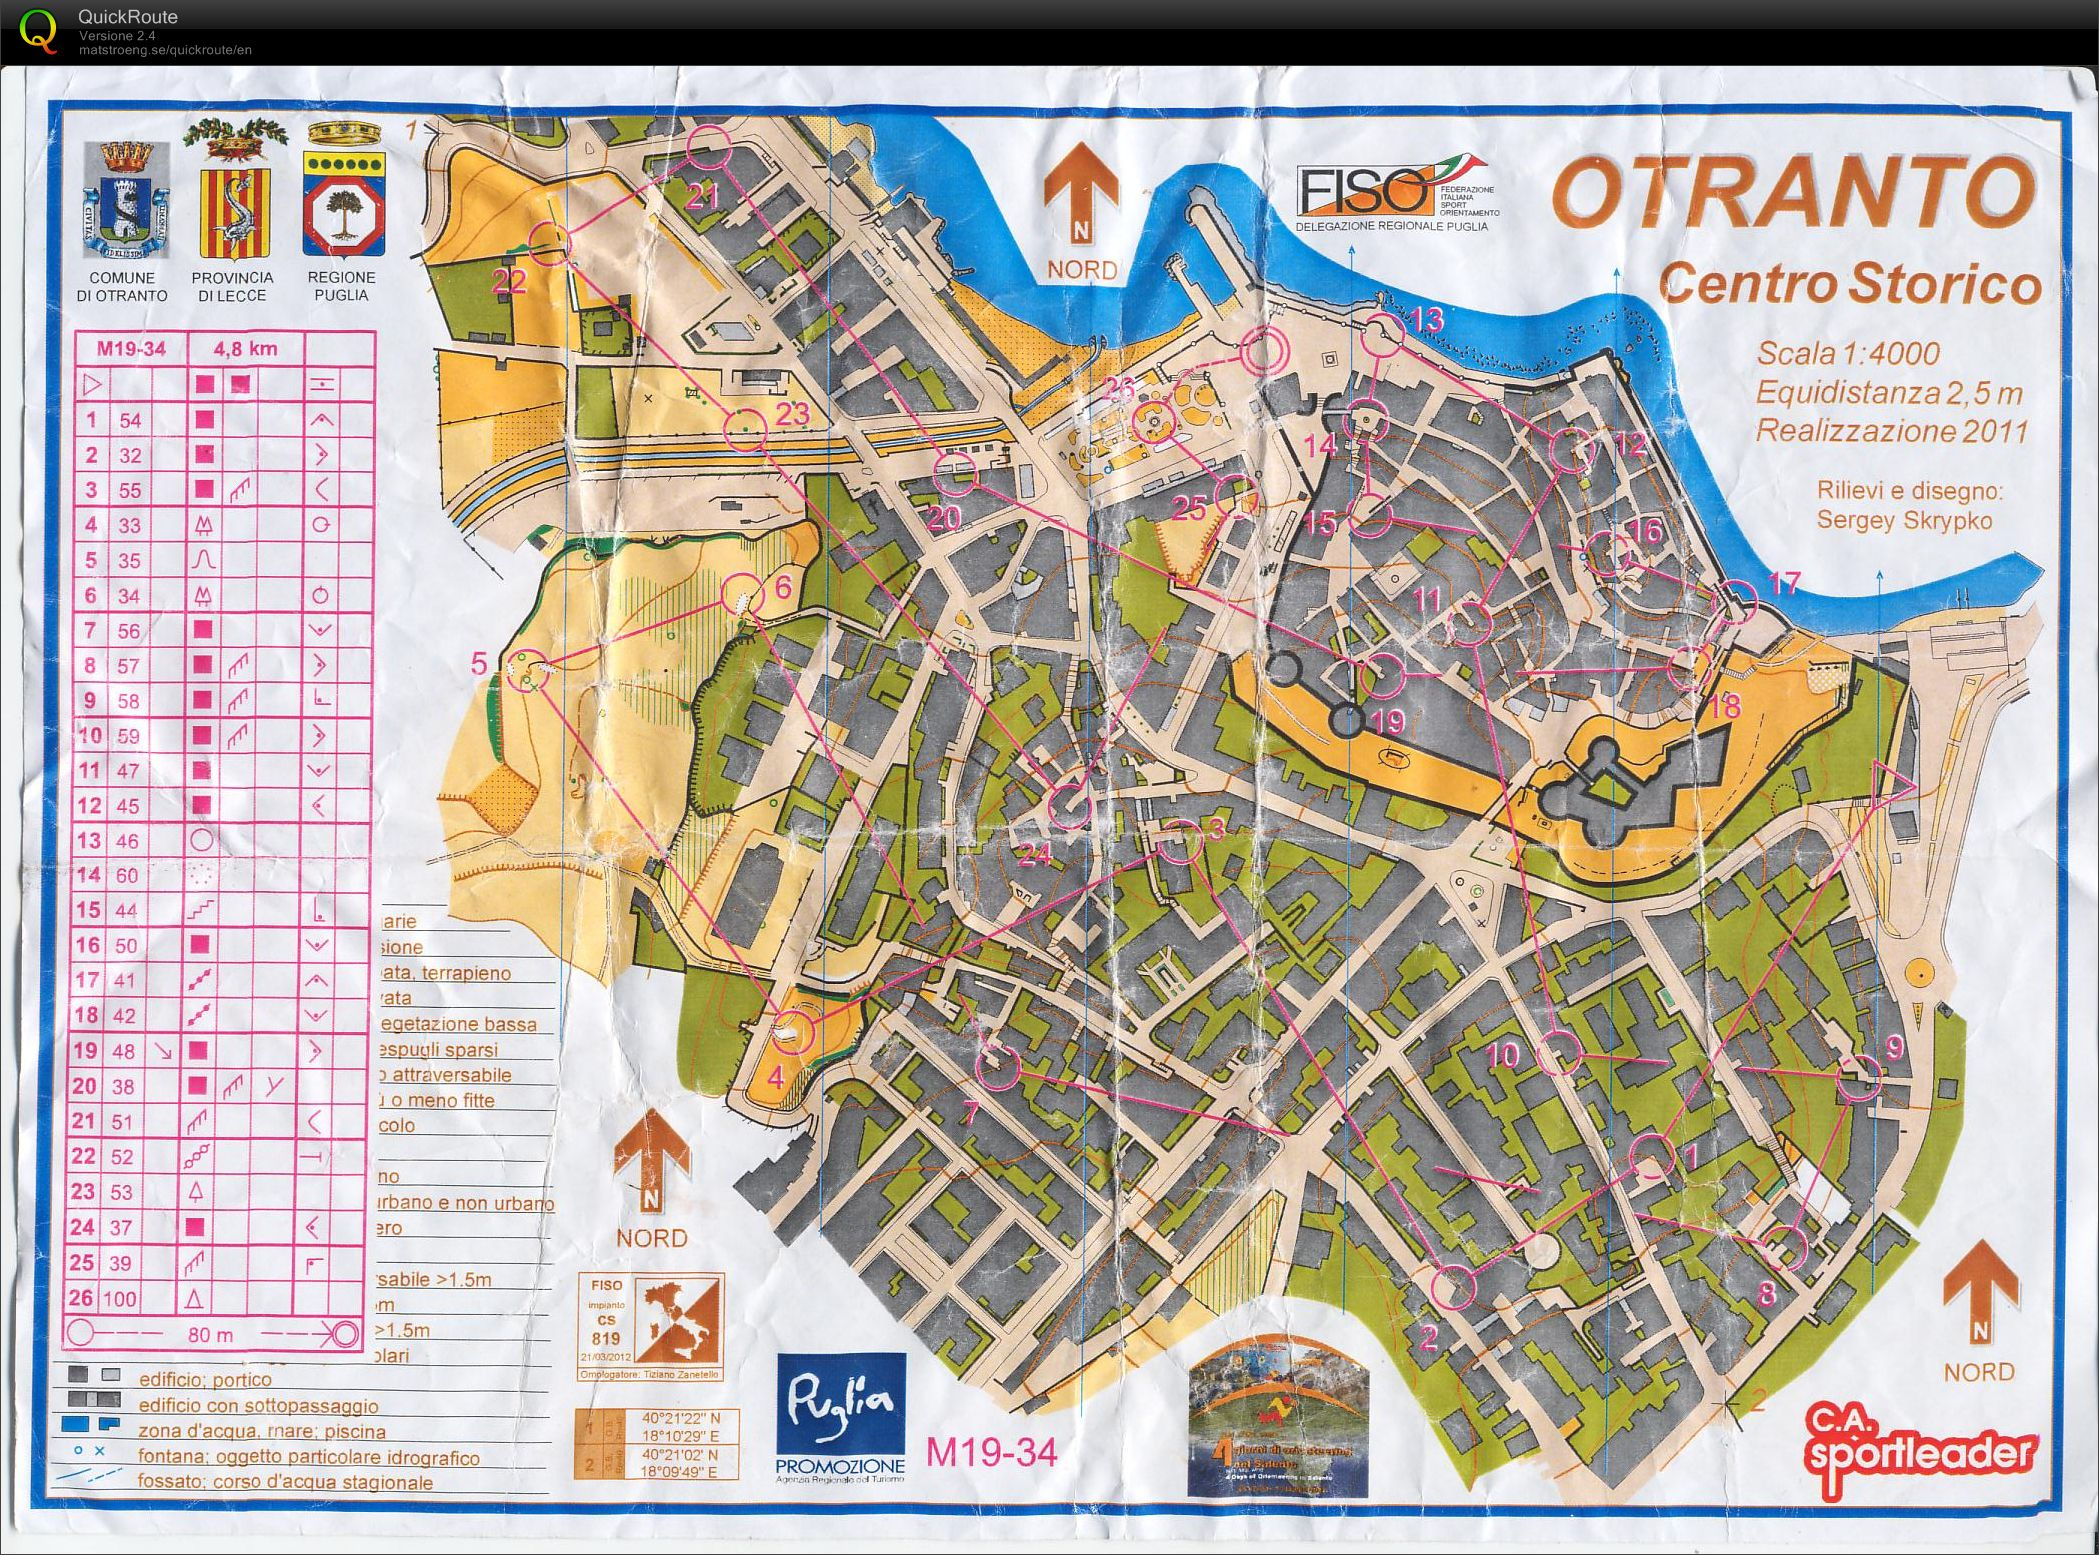 Otranto Italy Map.Notturna A Otranto April 28th 2012 Orienteering Map From Edoardo